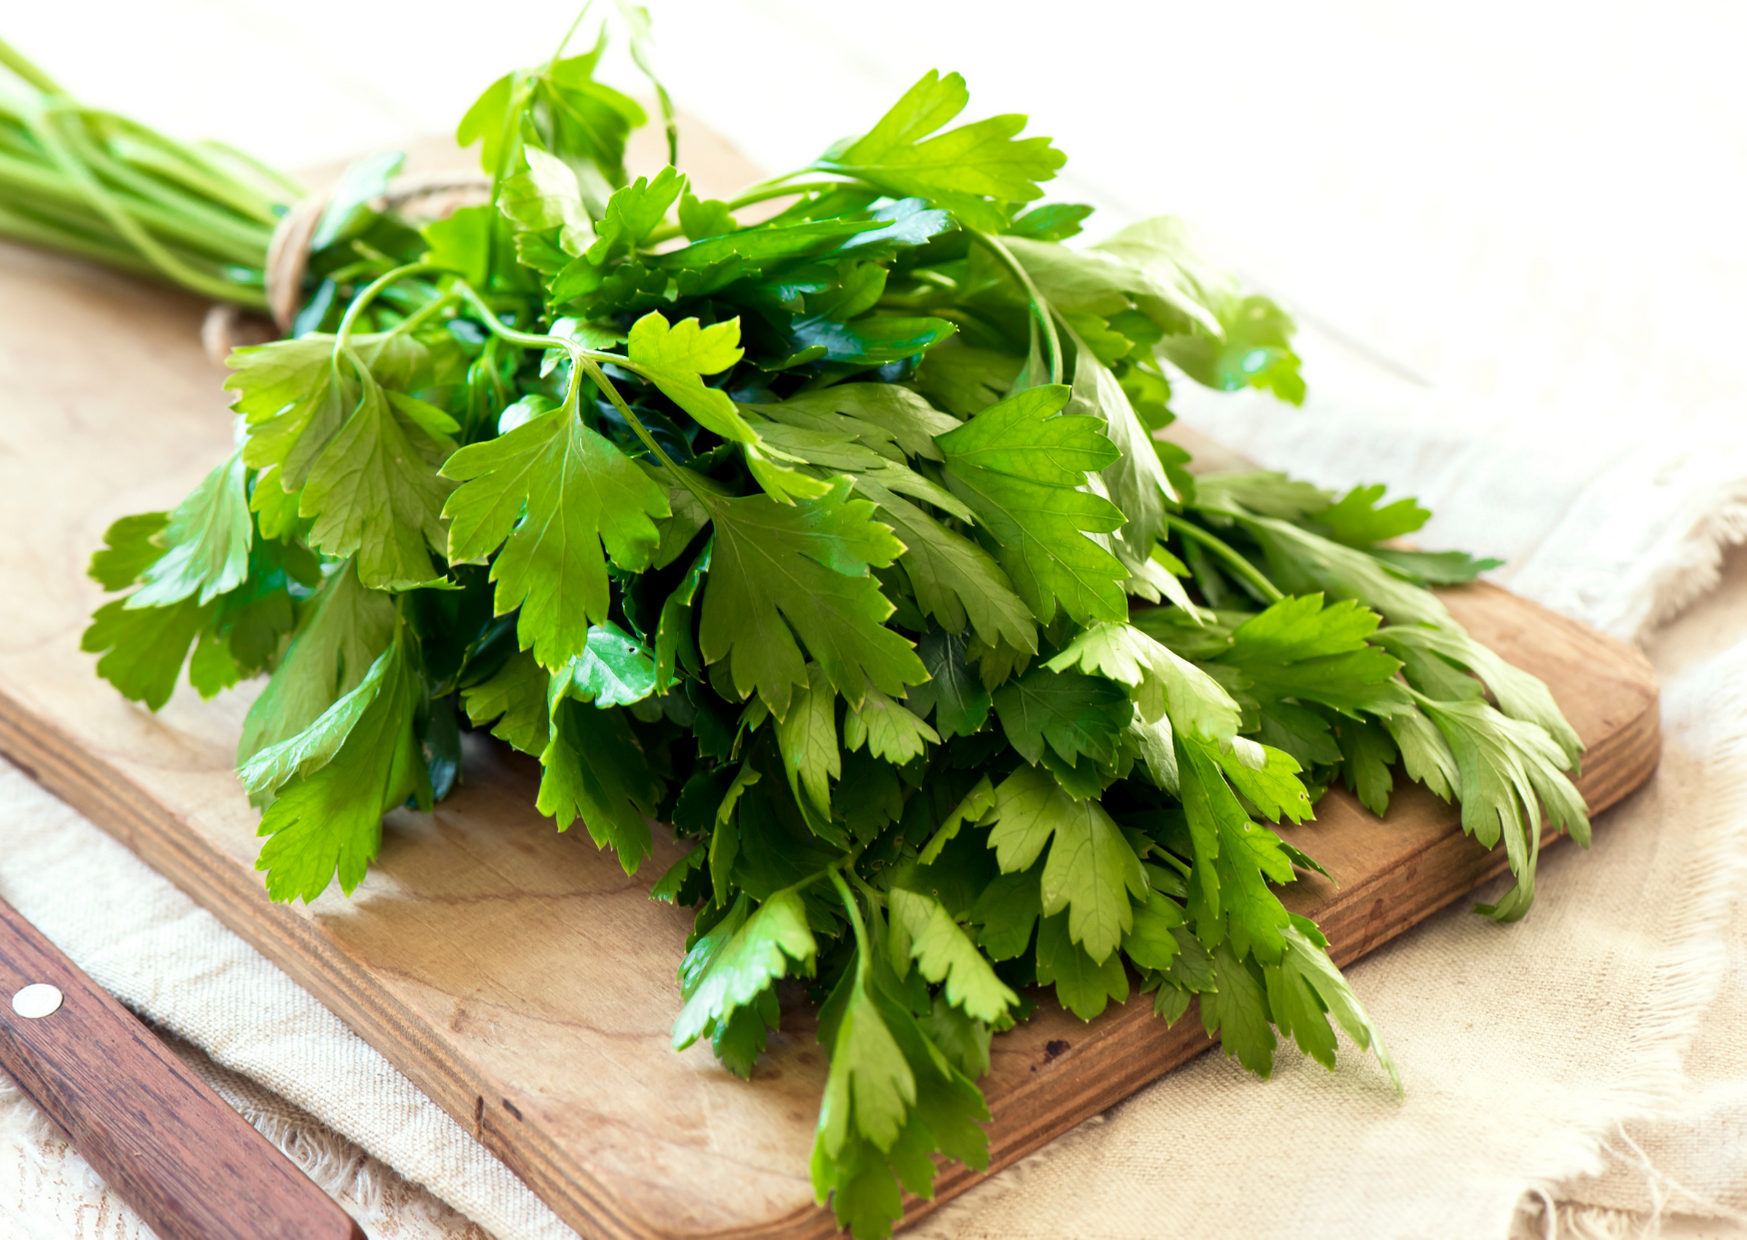 a photo of parsley